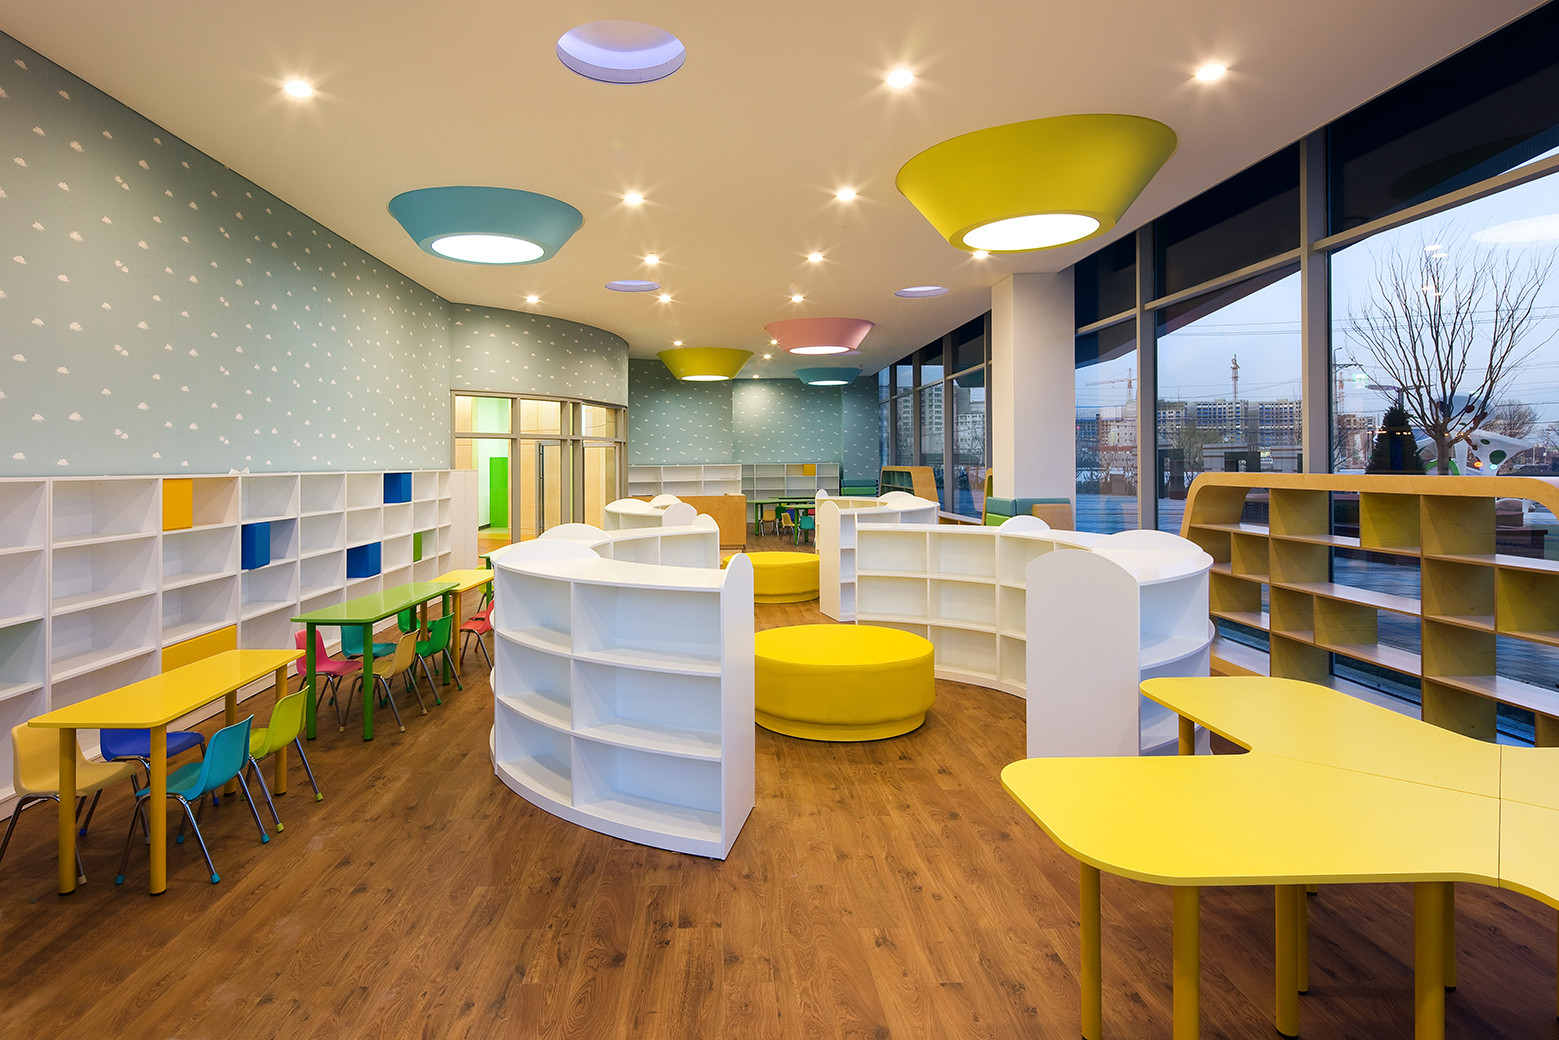 architecture architects children science museum incheon engineering park haeahn seongwoo engineers childrens young inside through arch2o panel cafeteria